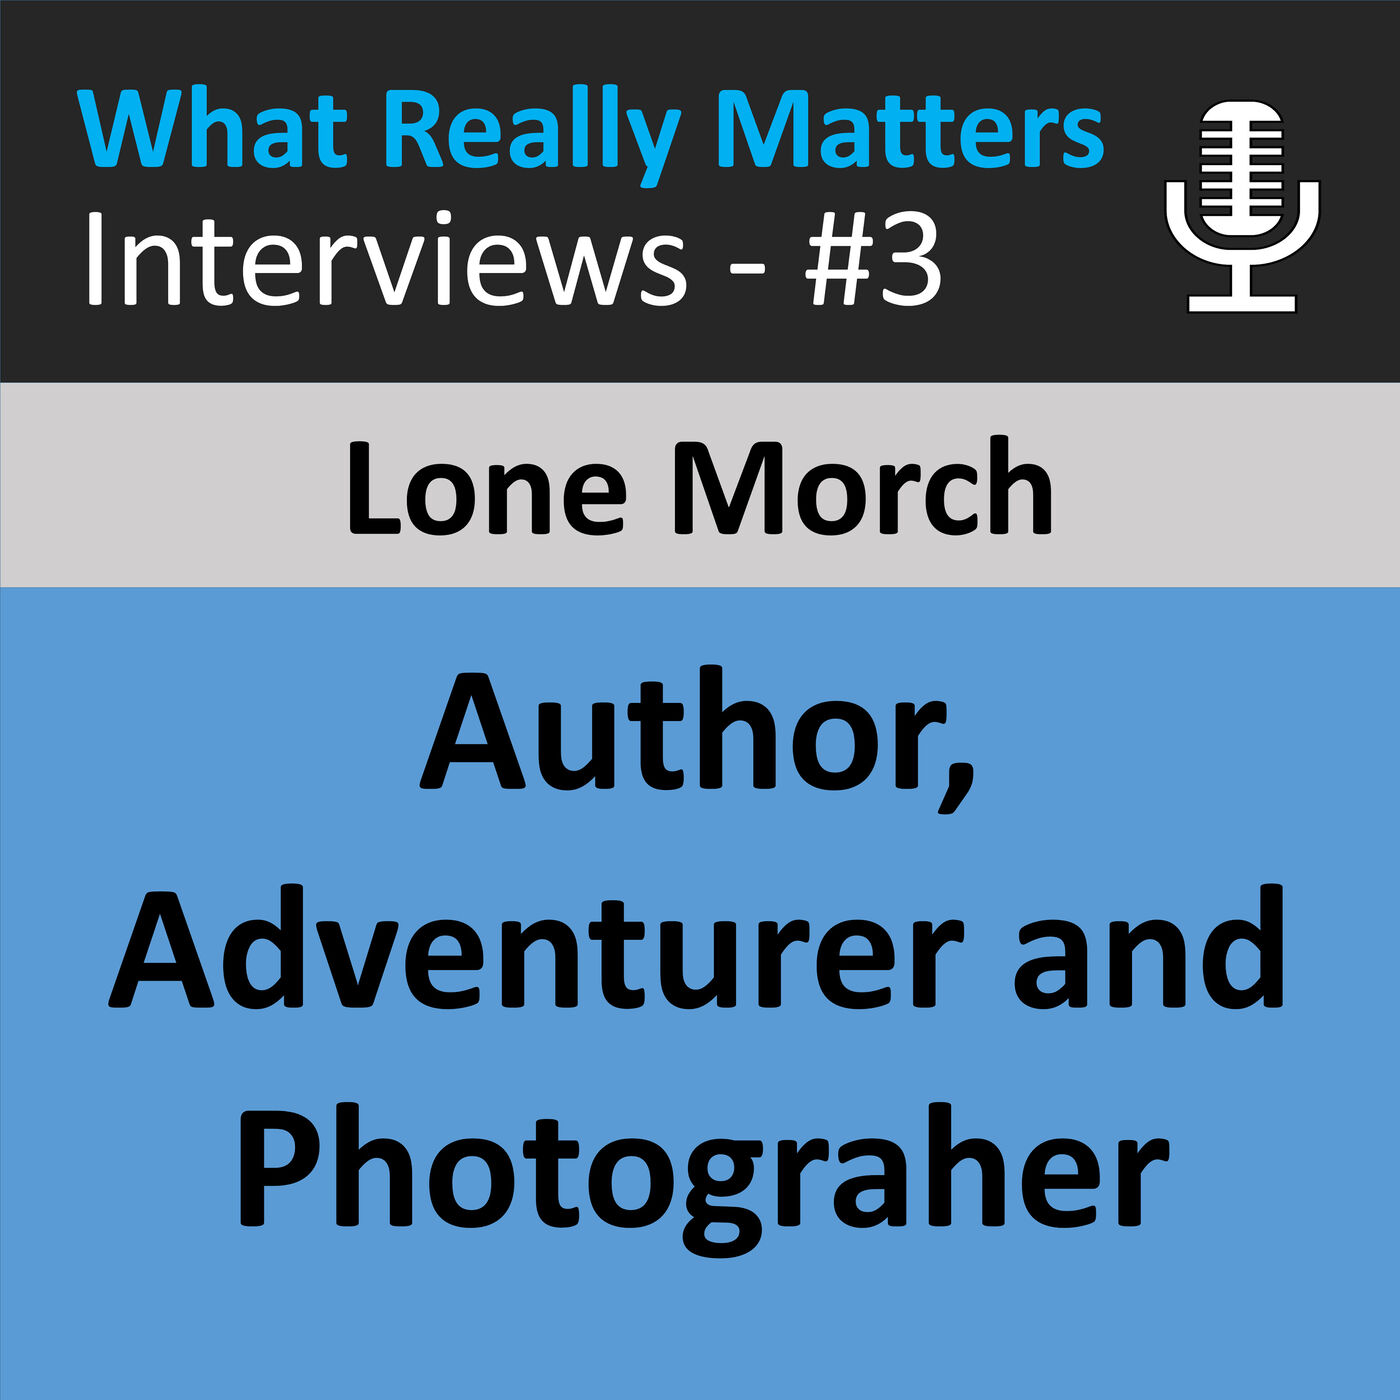 WRMI 003  Interview with Lone Morch - Author, Adventurer and Photographer